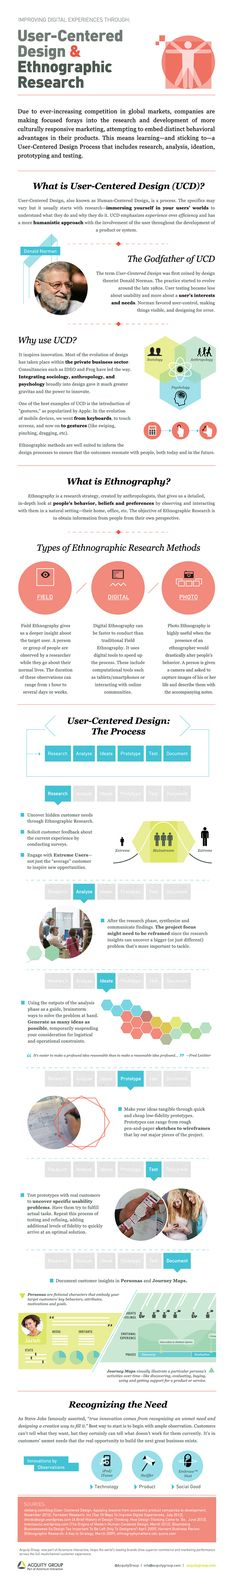 User-Centered Design & Ethnographic Research